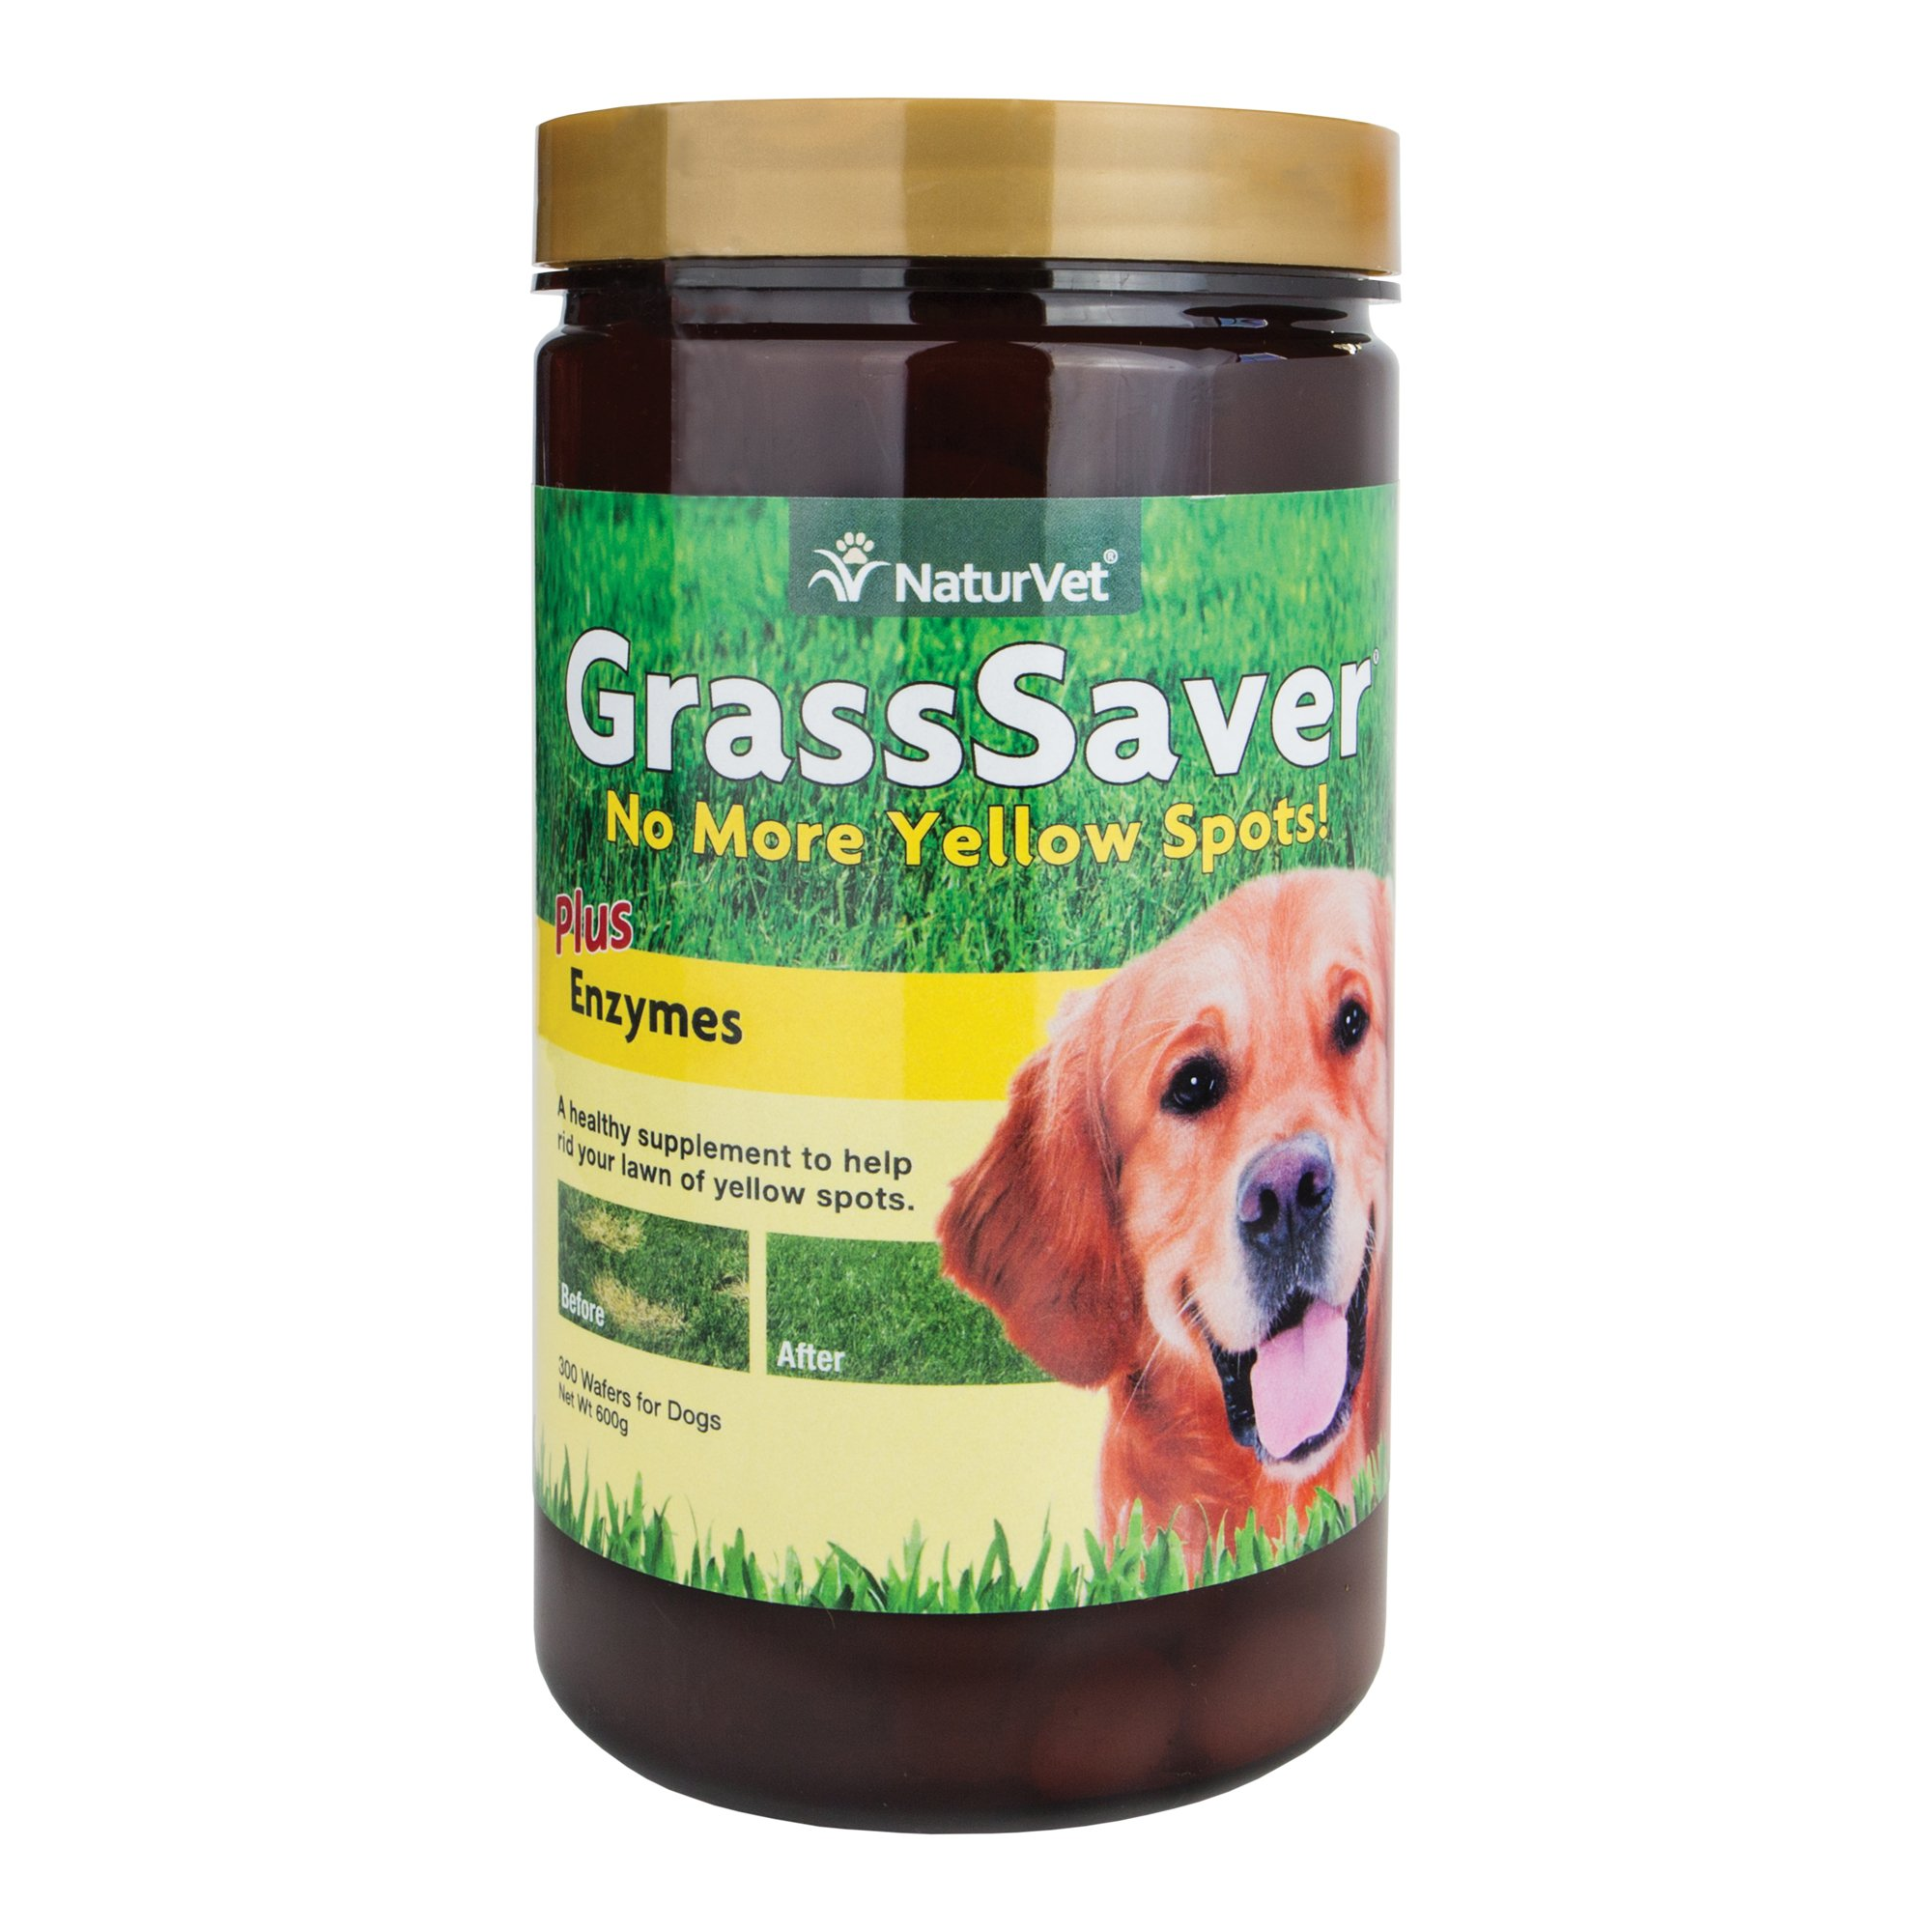 NaturVet GrassSaver Wafer Supplement, Removes The Yellow Spots on Your Grass From Dog Urine, Includes Healthy Enzymes, Made by